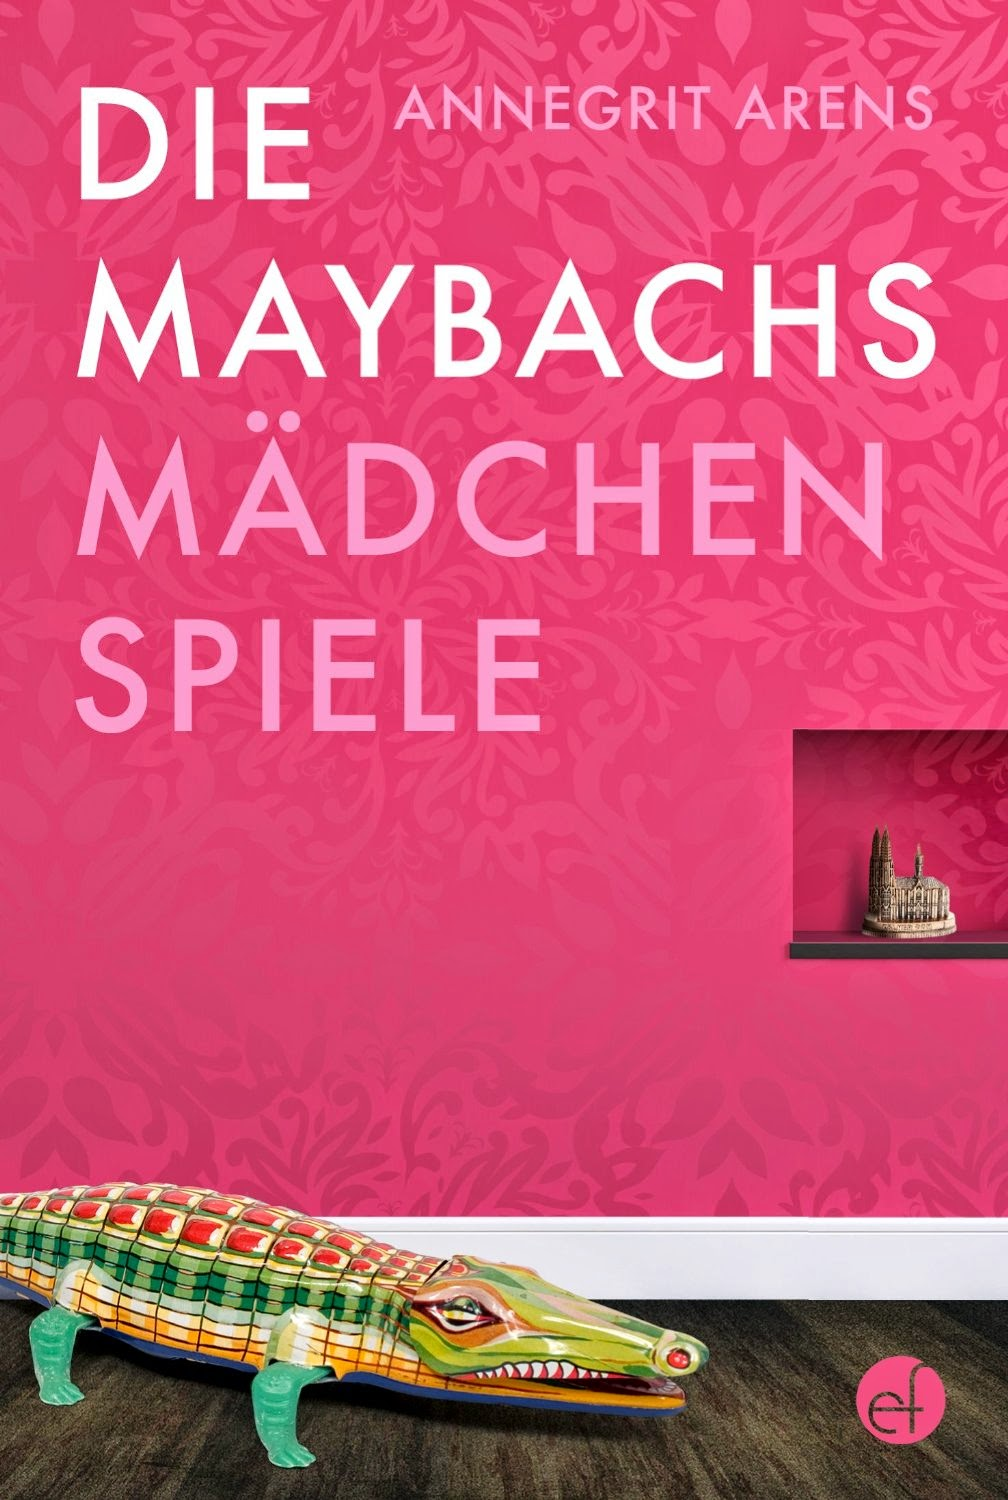 http://www.amazon.de/Die-Maybachs-M%C3%A4dchenspiele-Annegrit-Arens-ebook/dp/B00PIXT7JE/ref=sr_1_7_twi_1?ie=UTF8&qid=1416665241&sr=8-7&keywords=die+maybachs